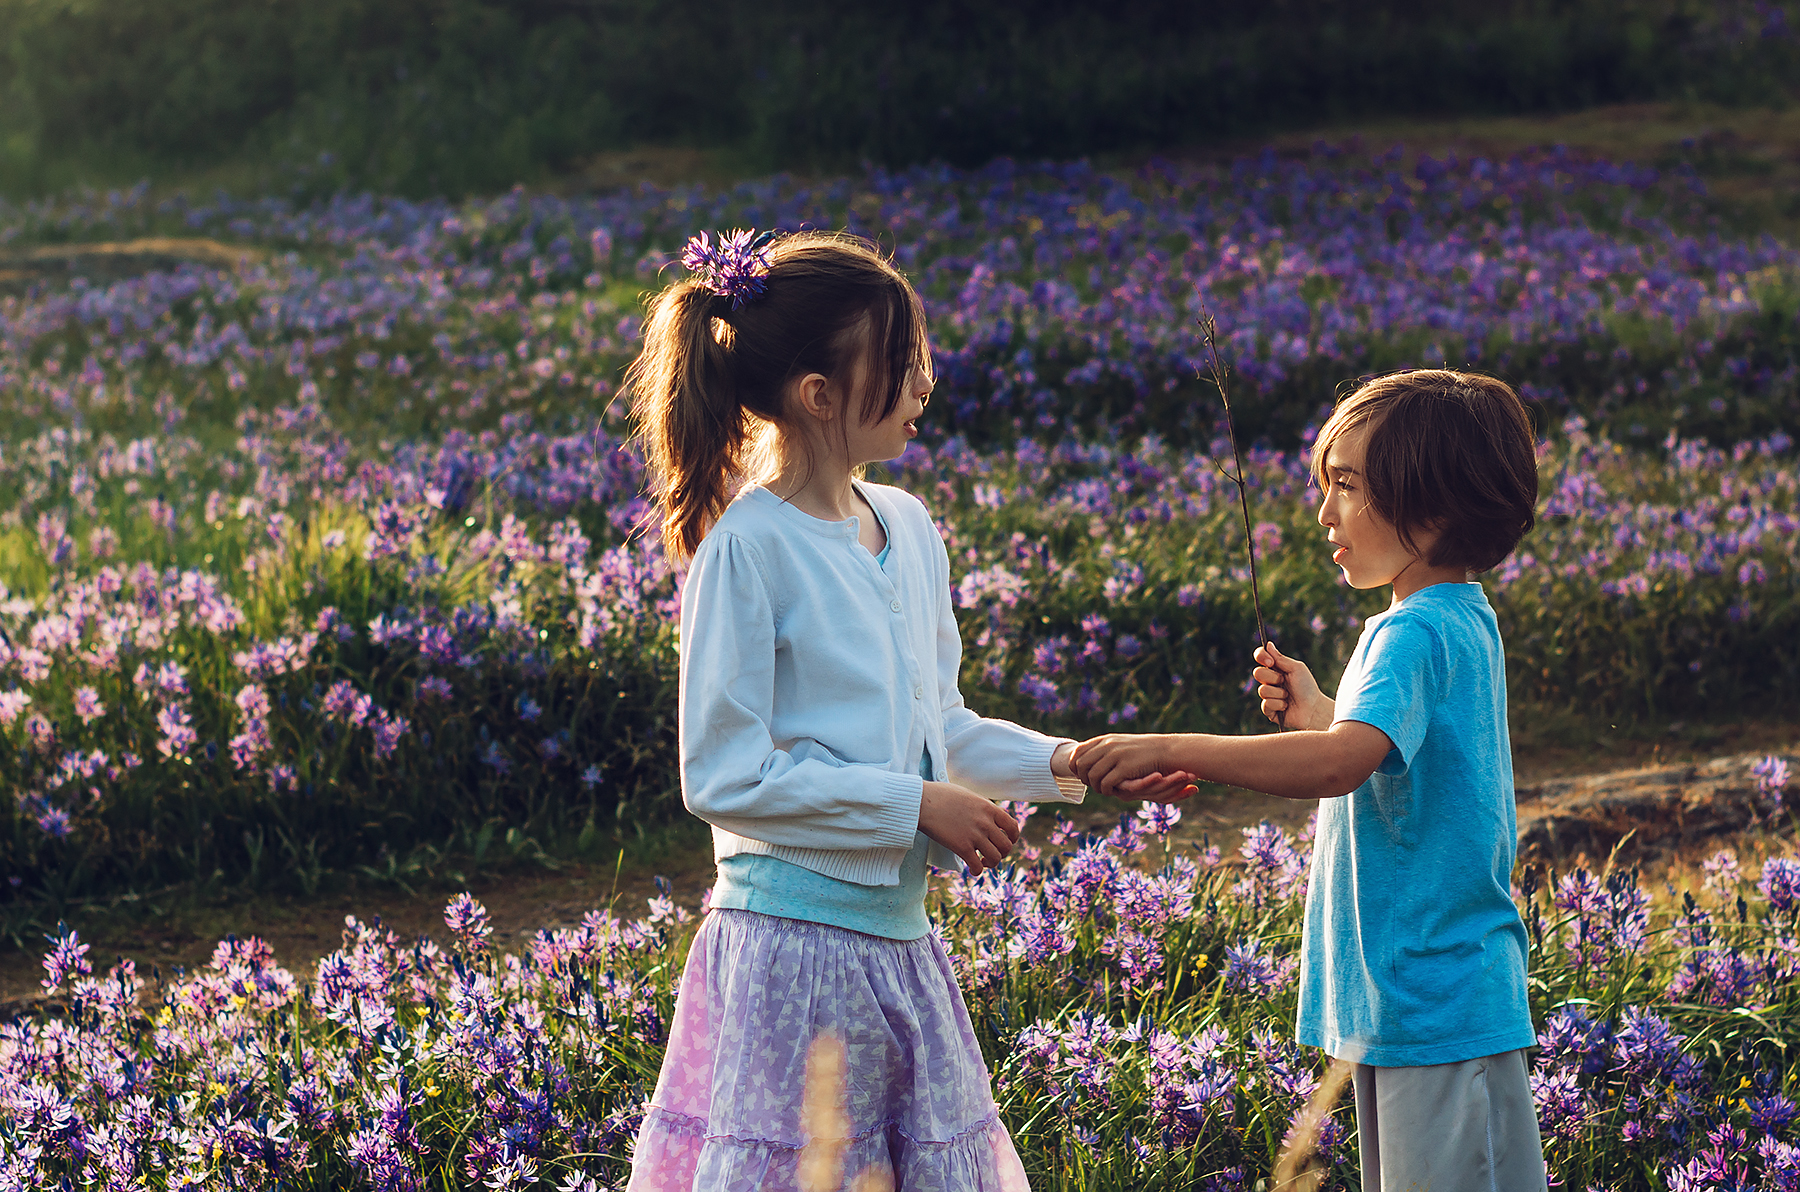 children holding hands in a field of flowers